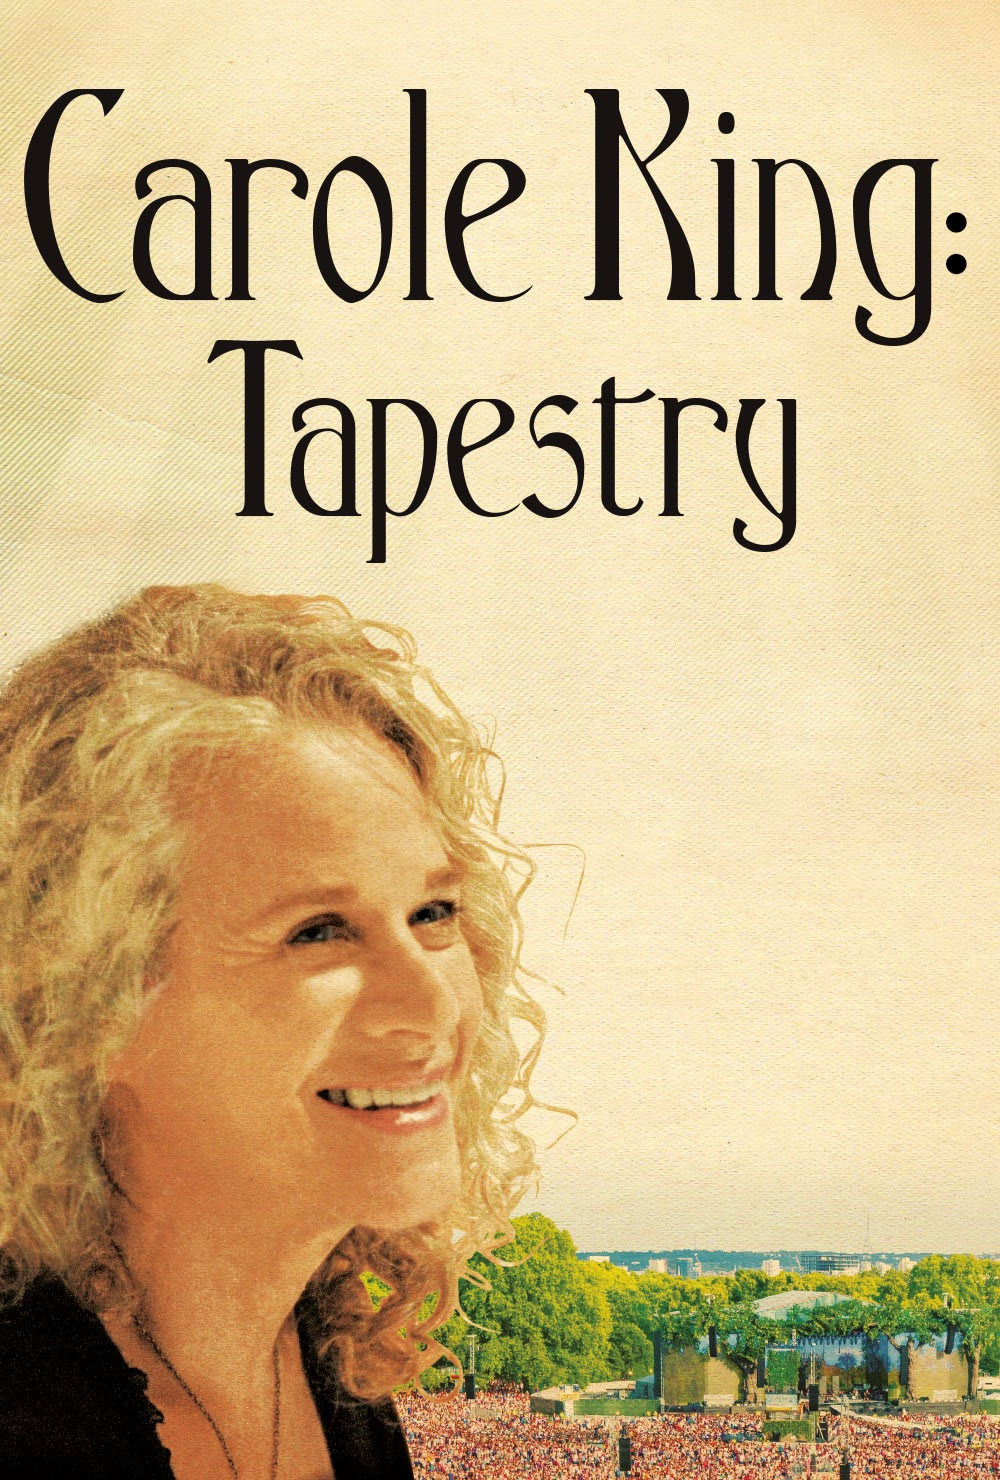 Carole King Tapestry